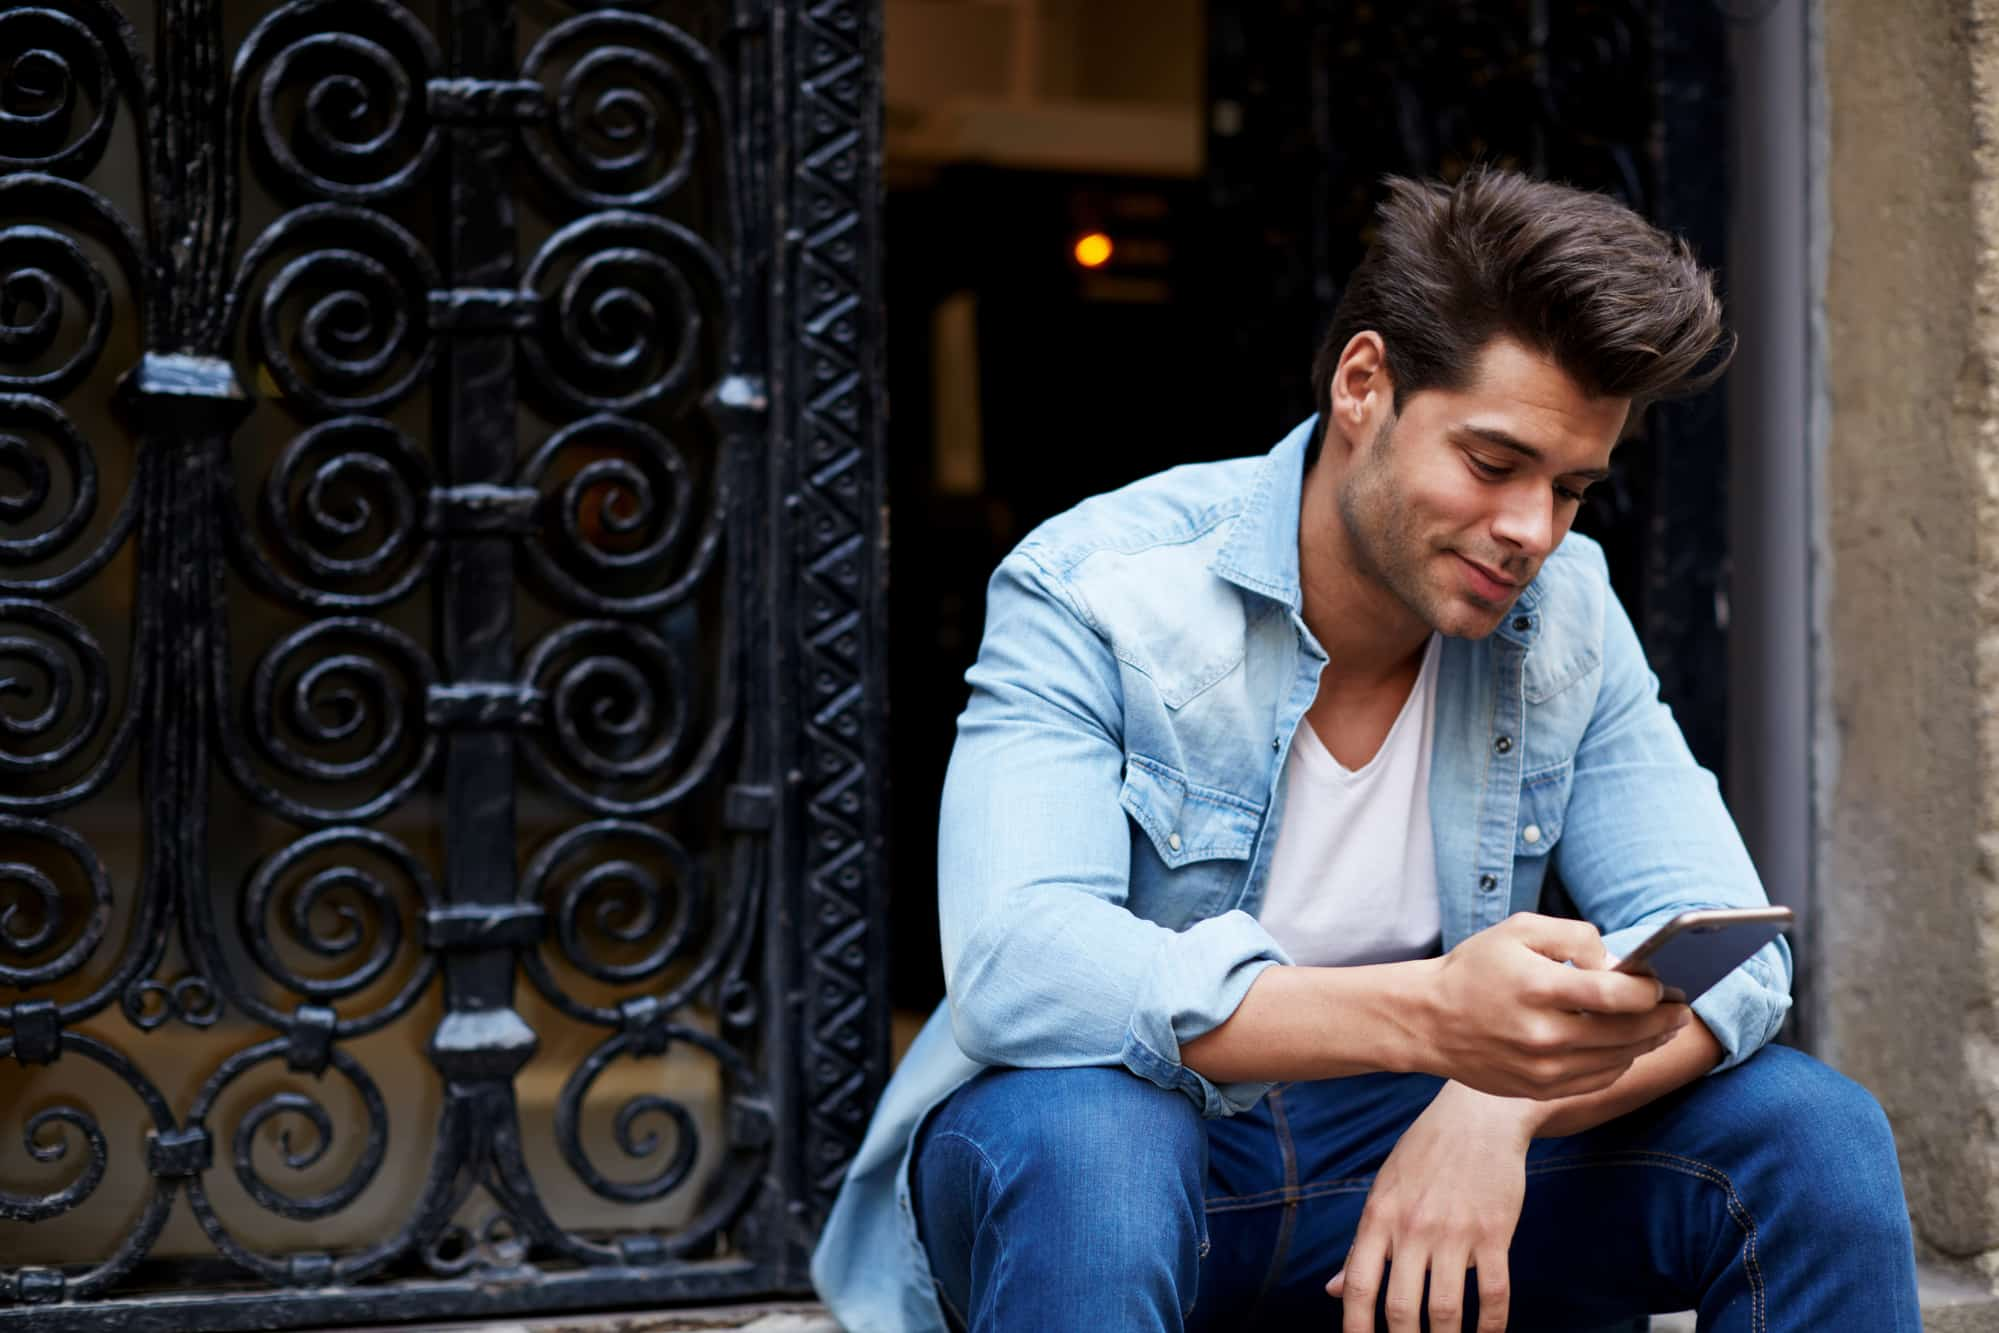 My Ex Texted Me Then Ignores Me (9 Reasons Why) - Her Norm